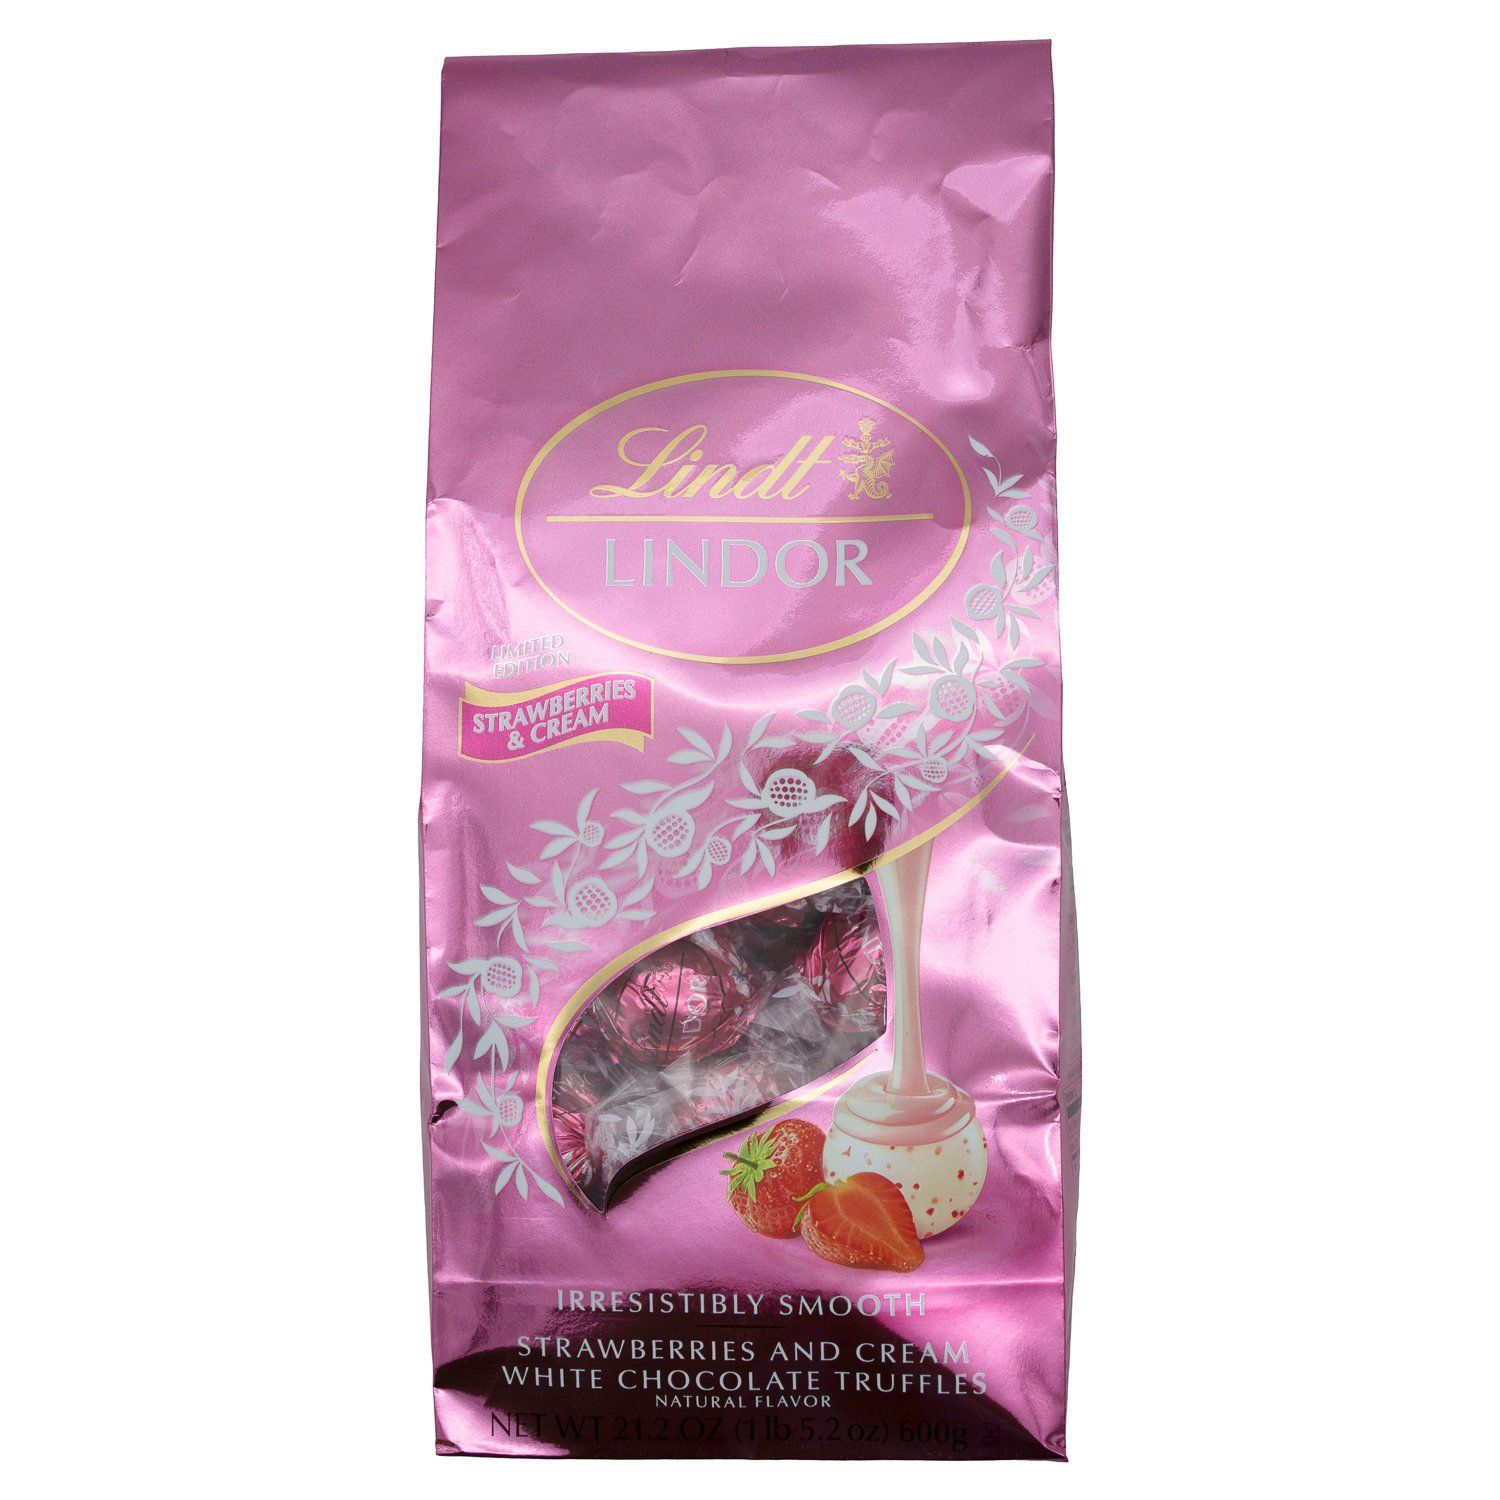 Lindt LINDOR Truffles Meltable Lindt Strawberries & Cream 21.2 Ounce